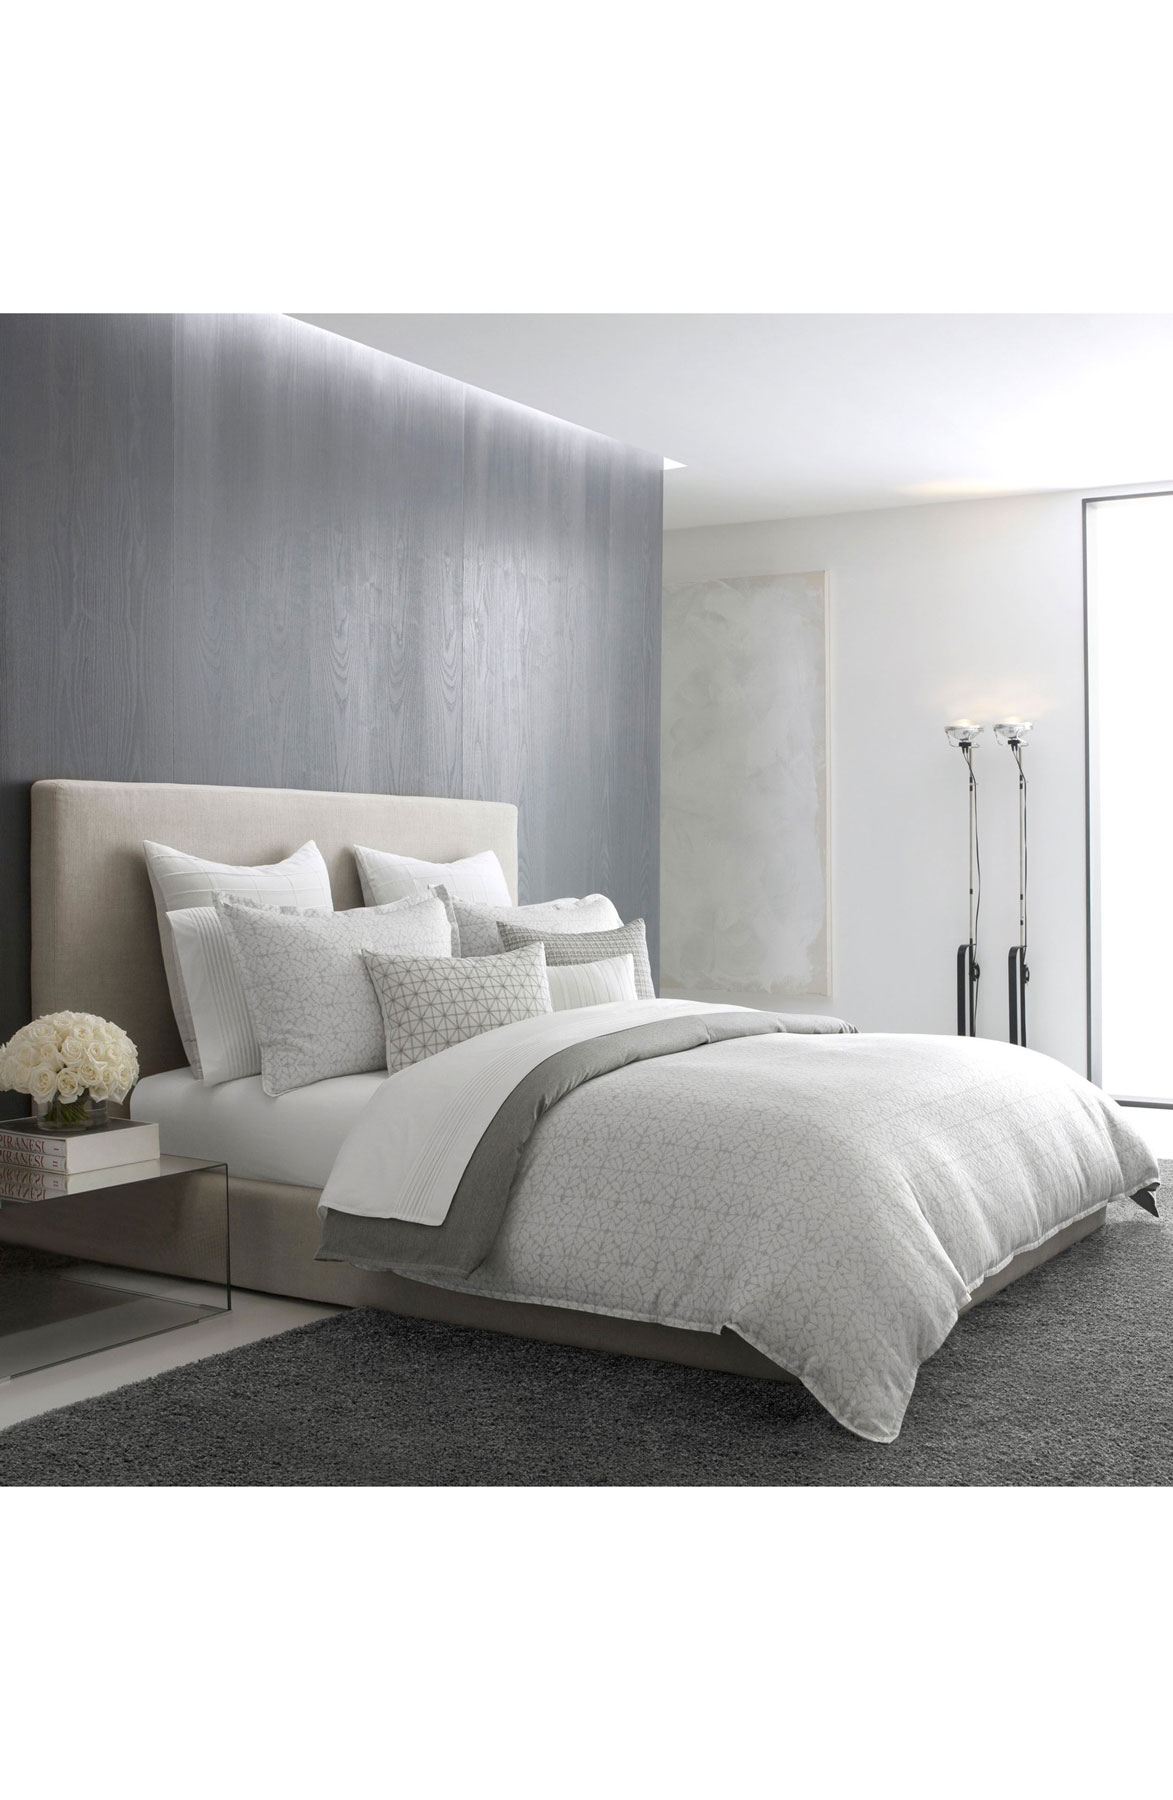 Vera Wang Mirrored Square Duvet Cover